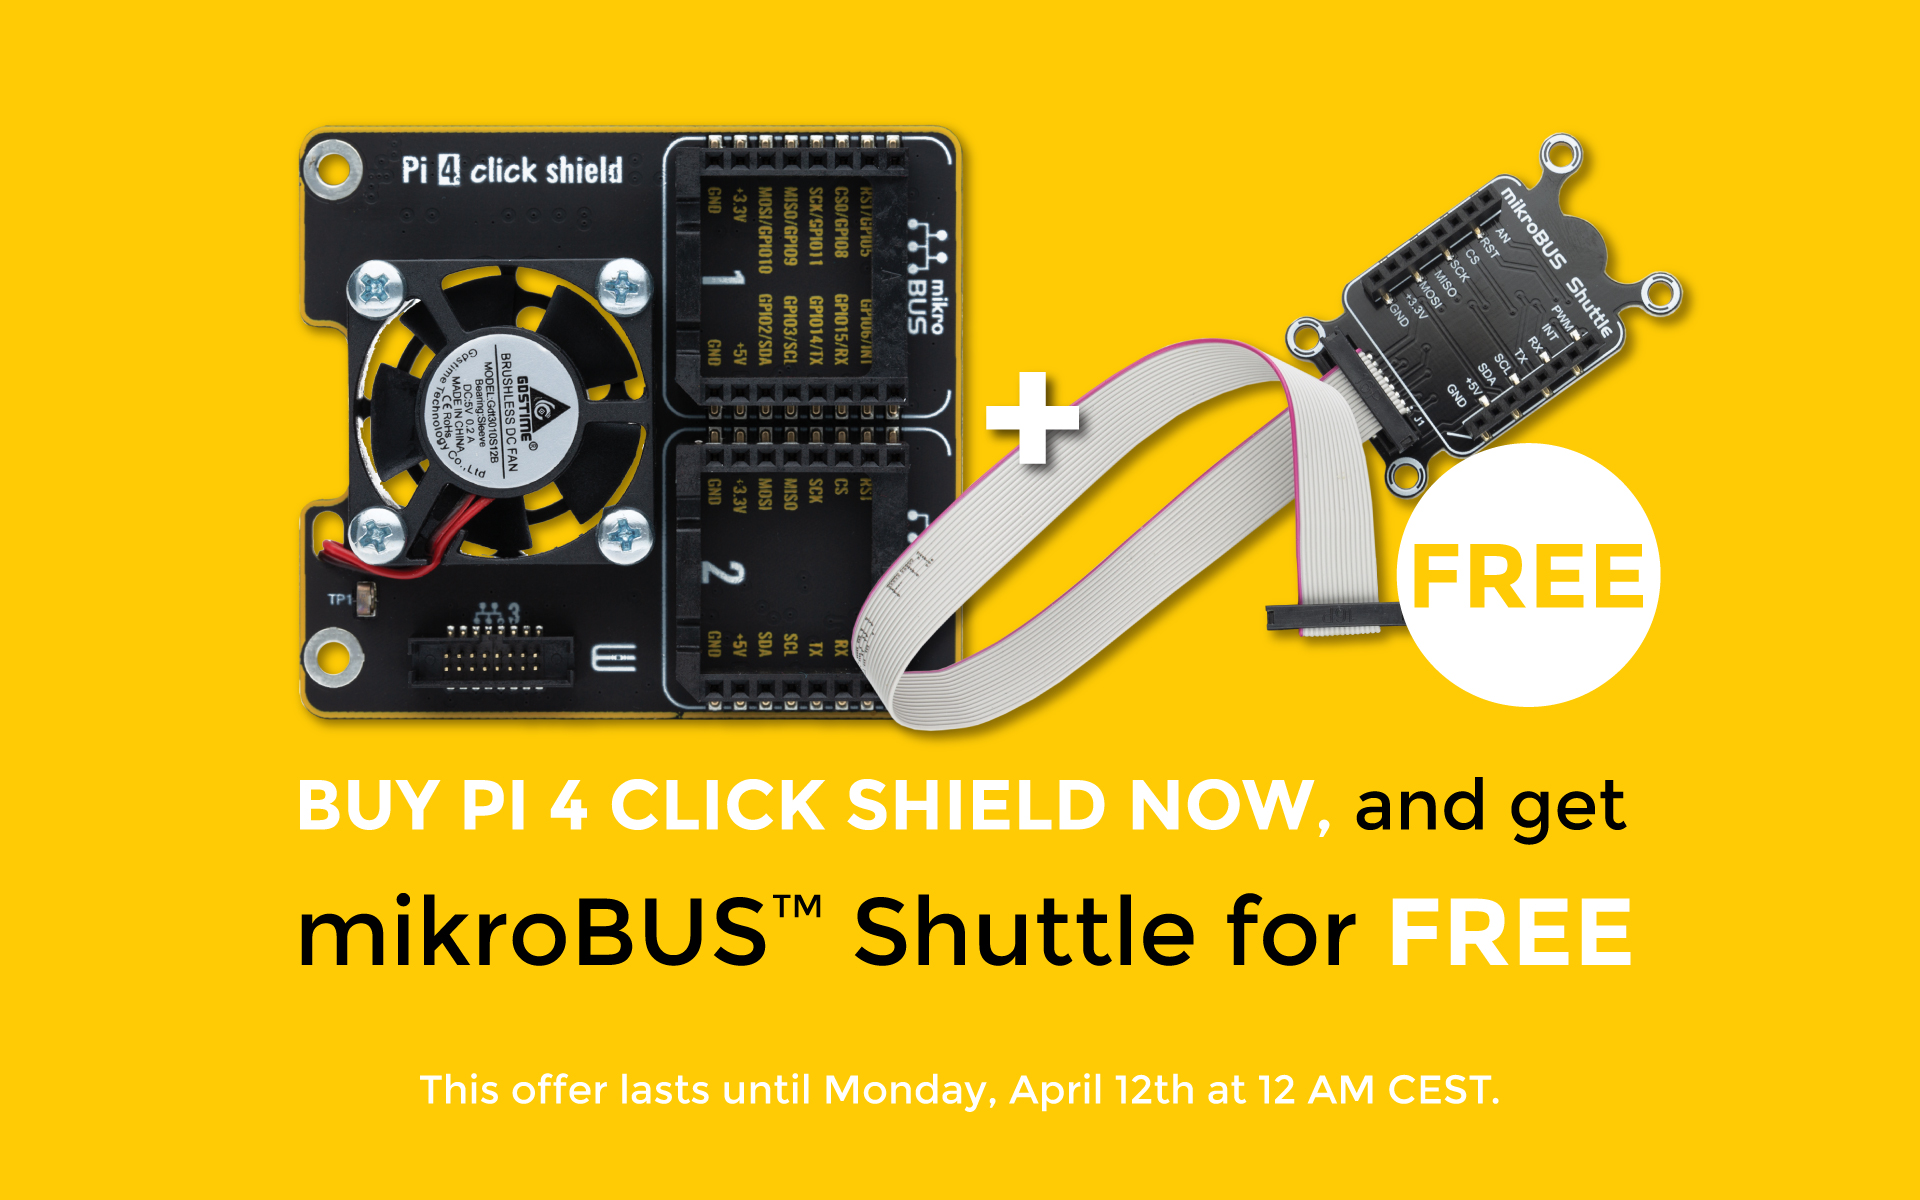 pi-4 click shield offer new